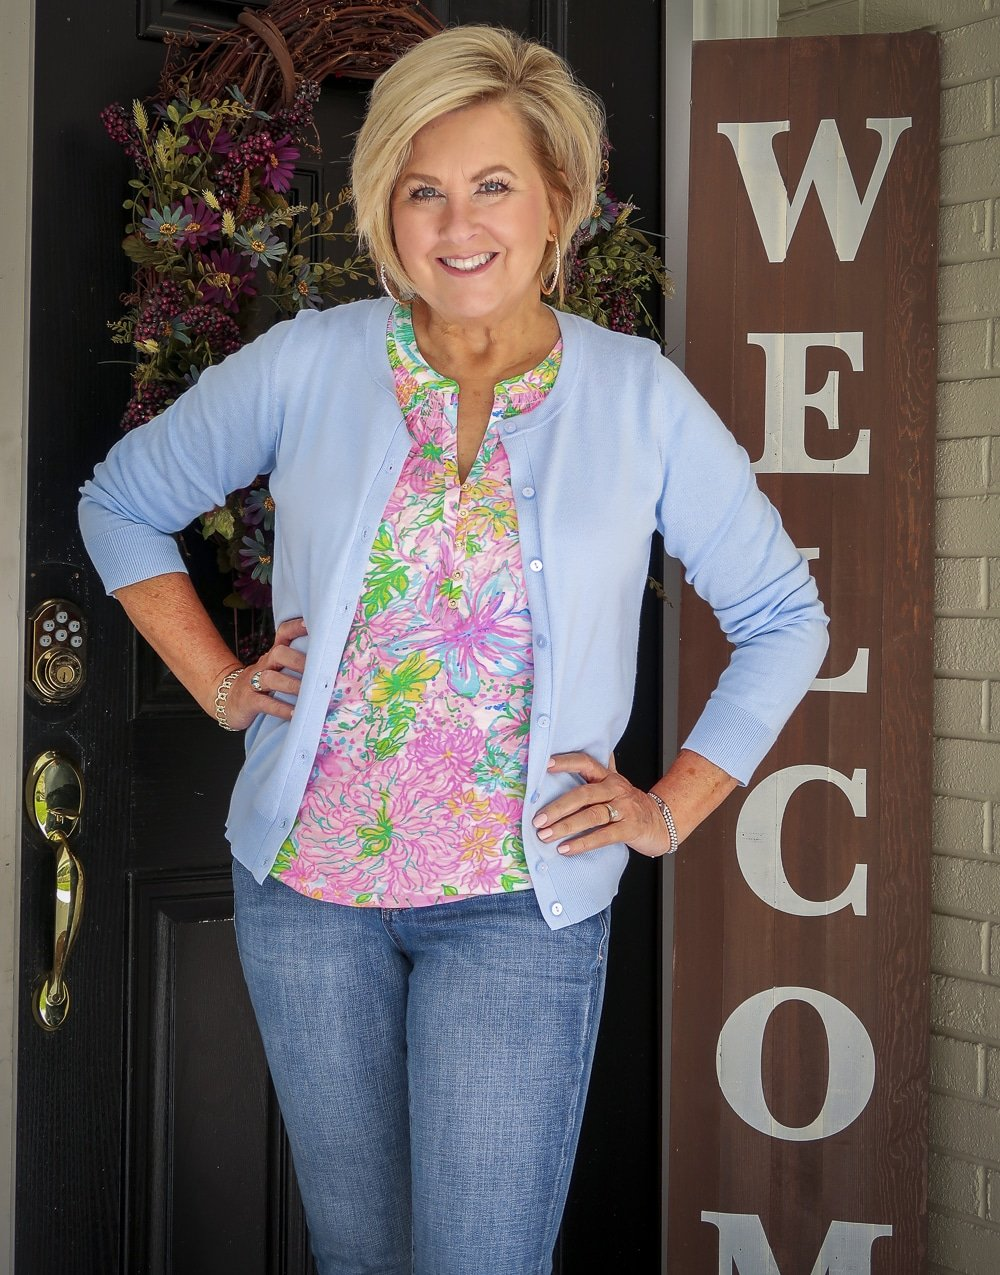 Fashion Blogger 50 Is Not Old is wearing a blue cardigan and a Lilly Pulitzer top